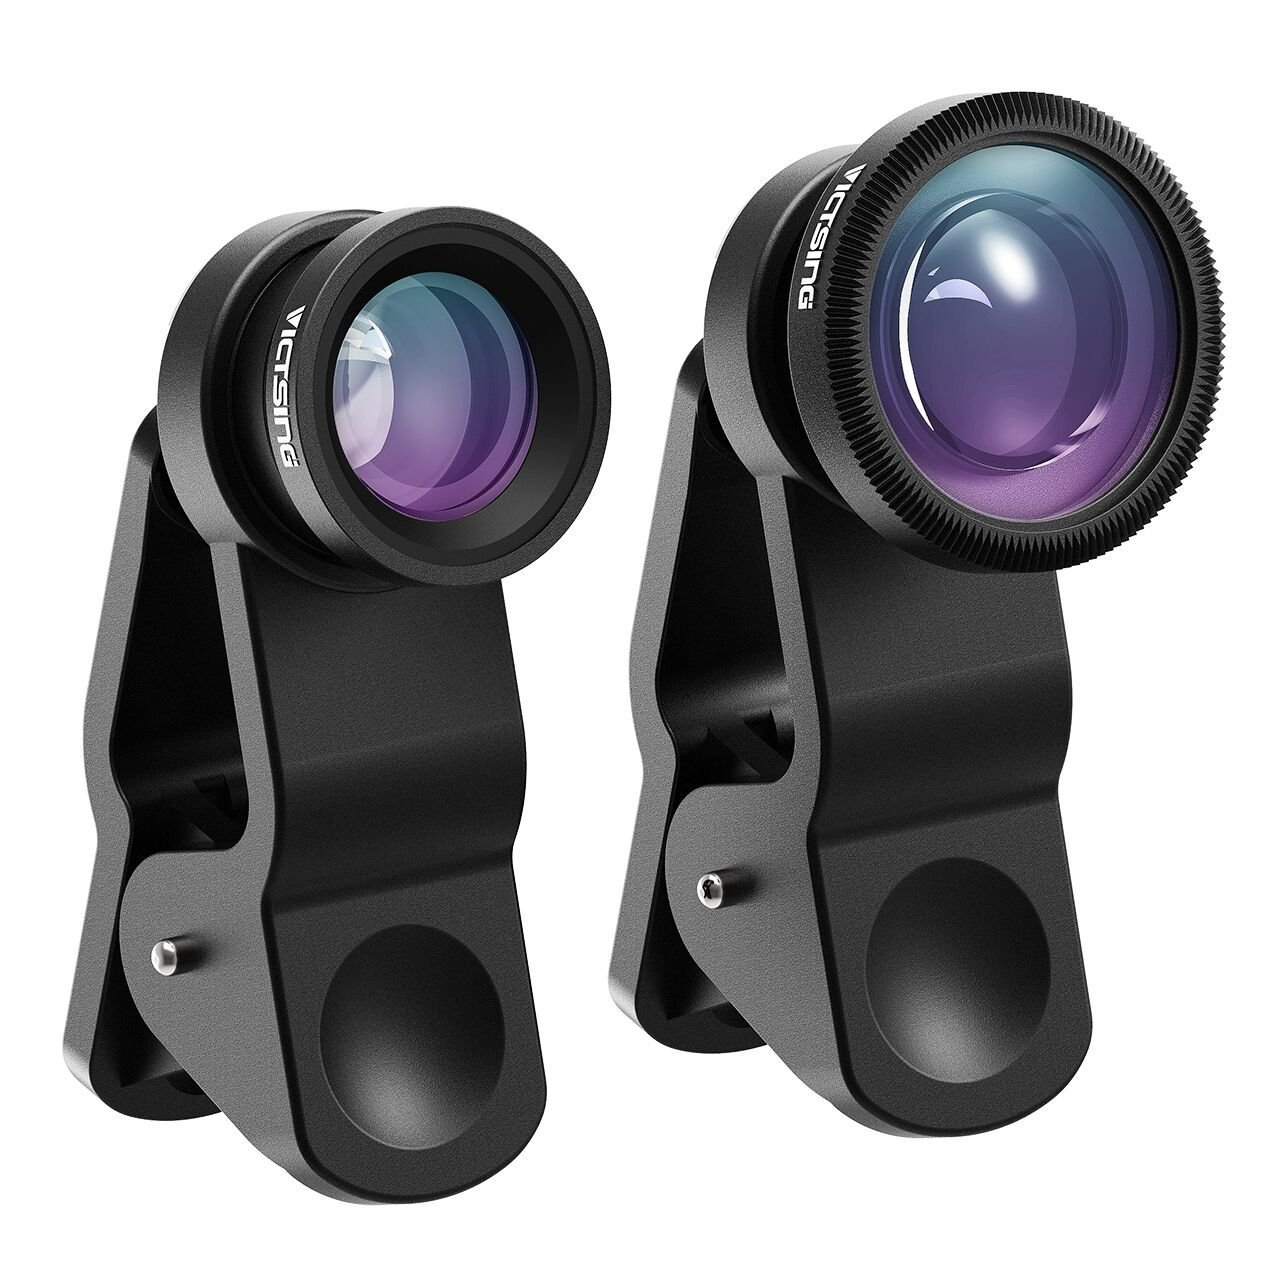 180/° Fisheye Lens+0.65X Wide Angle Lens /& 10X Macro Lens Most Android and Smart Phone- Black Screwed Together Clip on Cell Phone Lens Kits Compatible with iPhone 8//7//6s VicTsing Phone Camera Lens